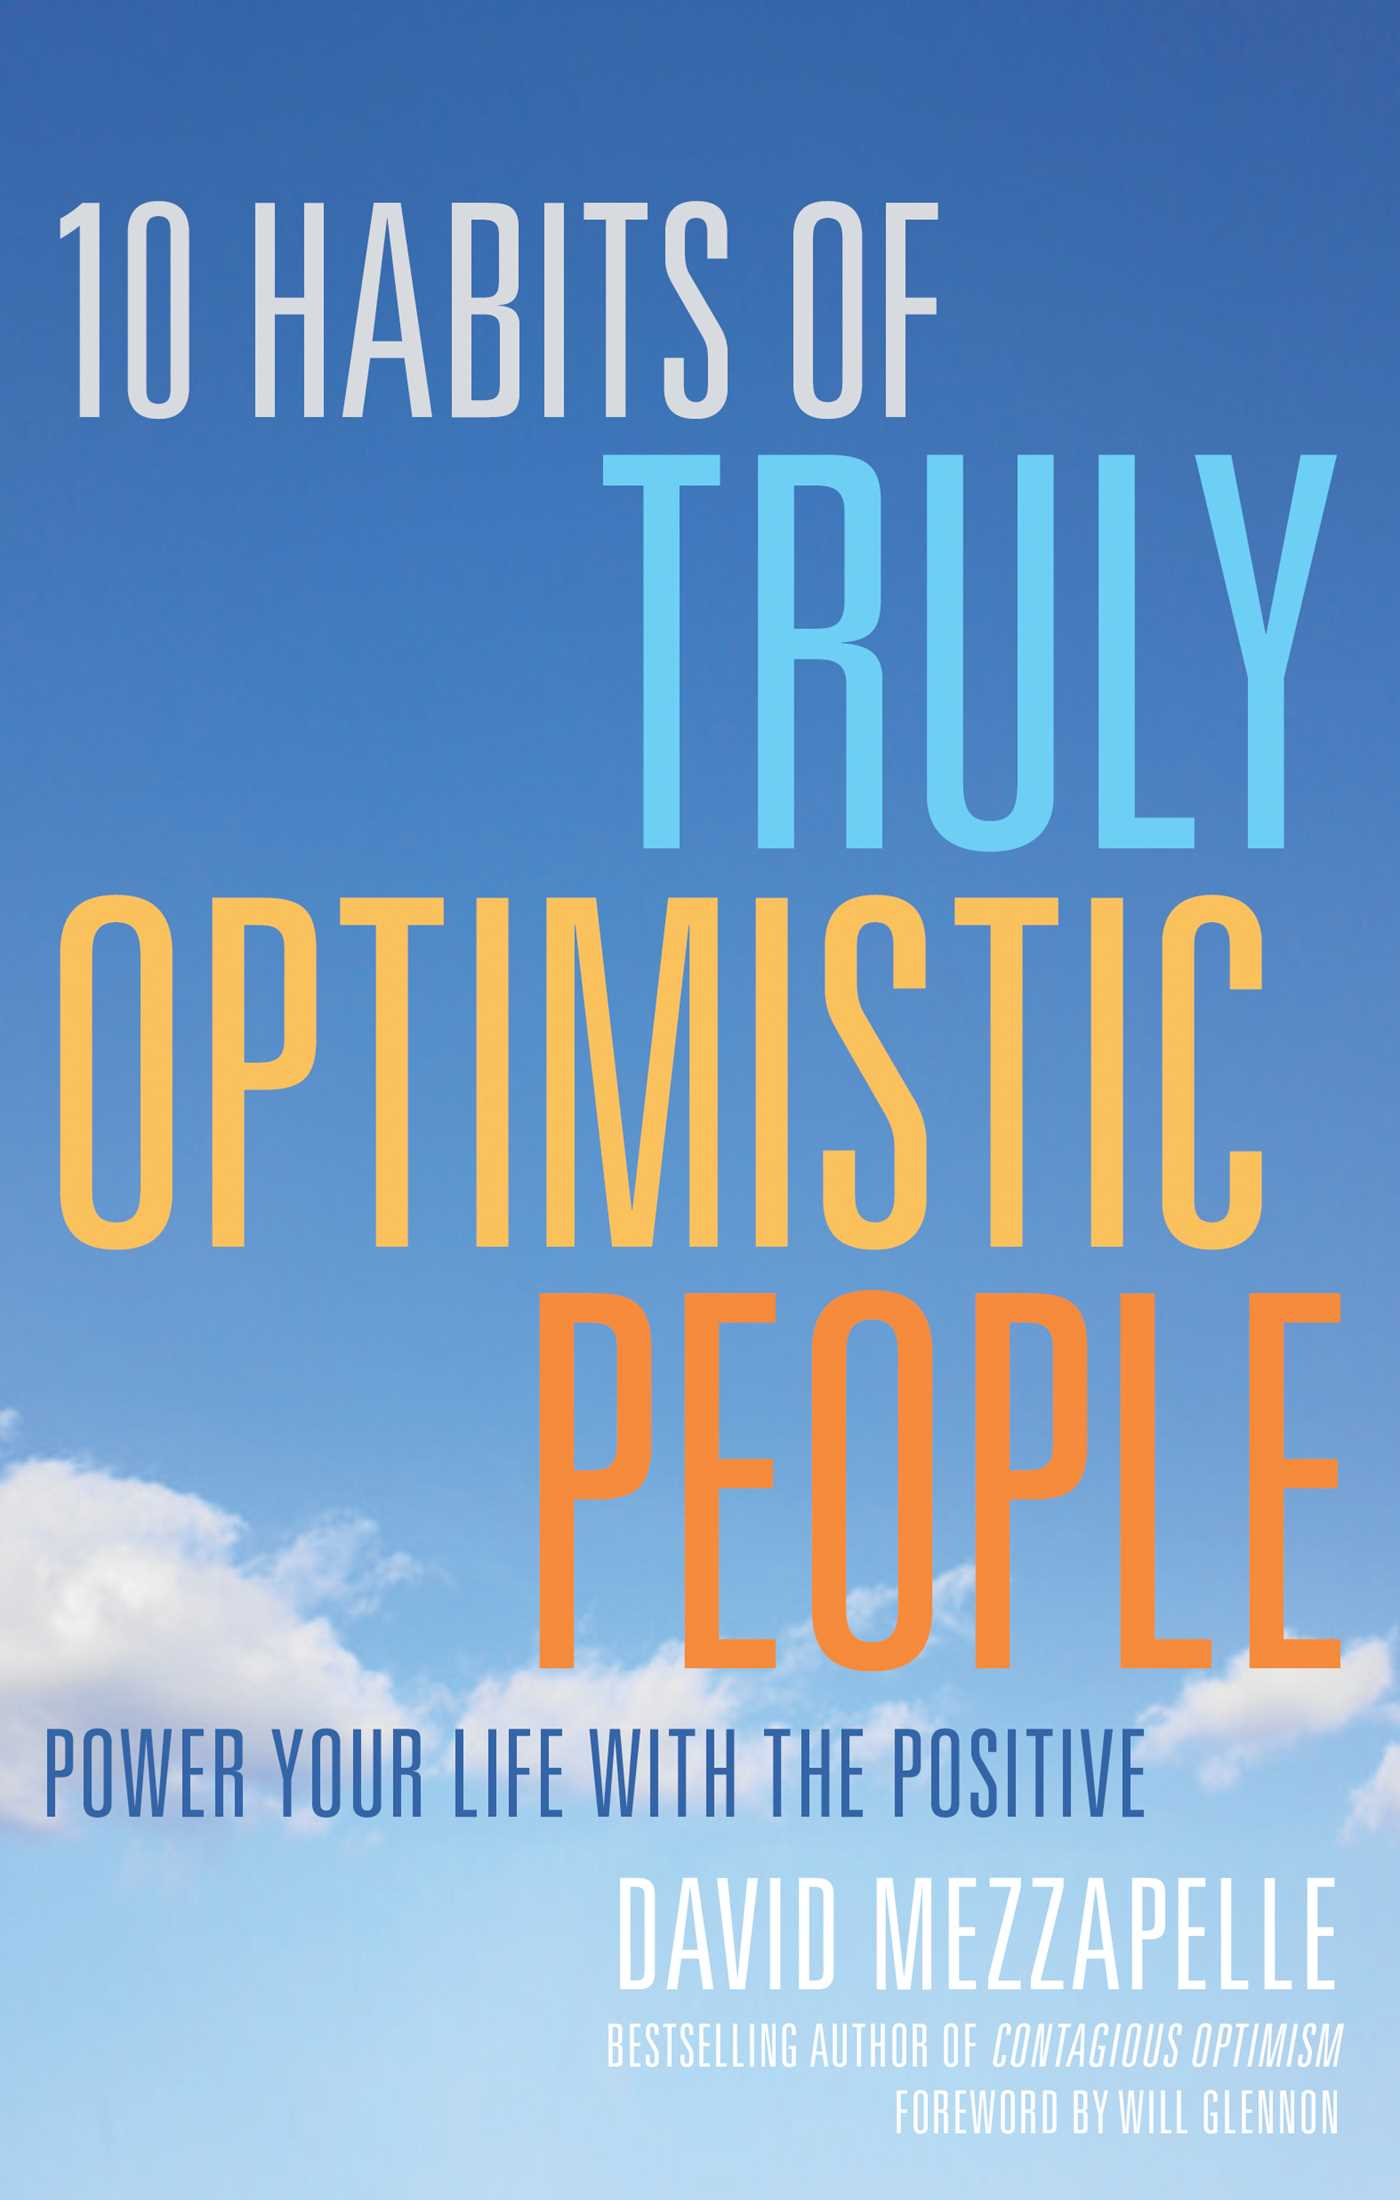 10 habits of truly optimistic people 9781632280114 hr